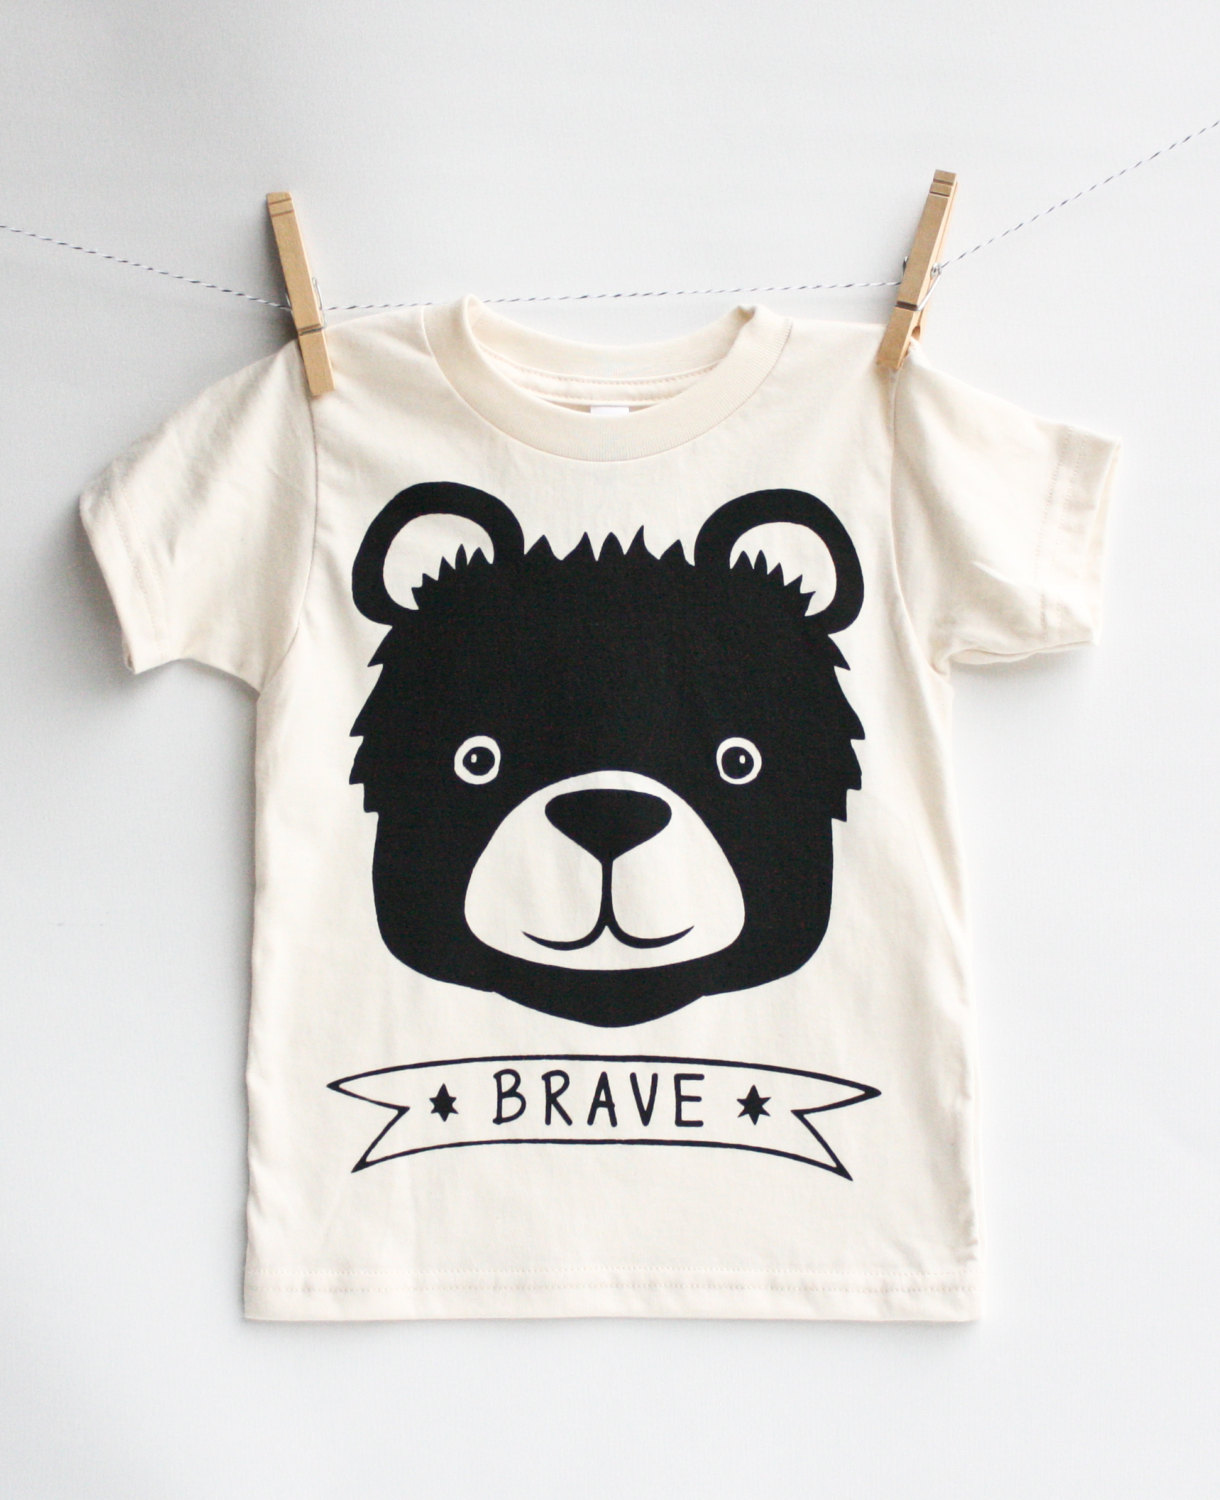 brave-bear-kids-printed-tee-shirt